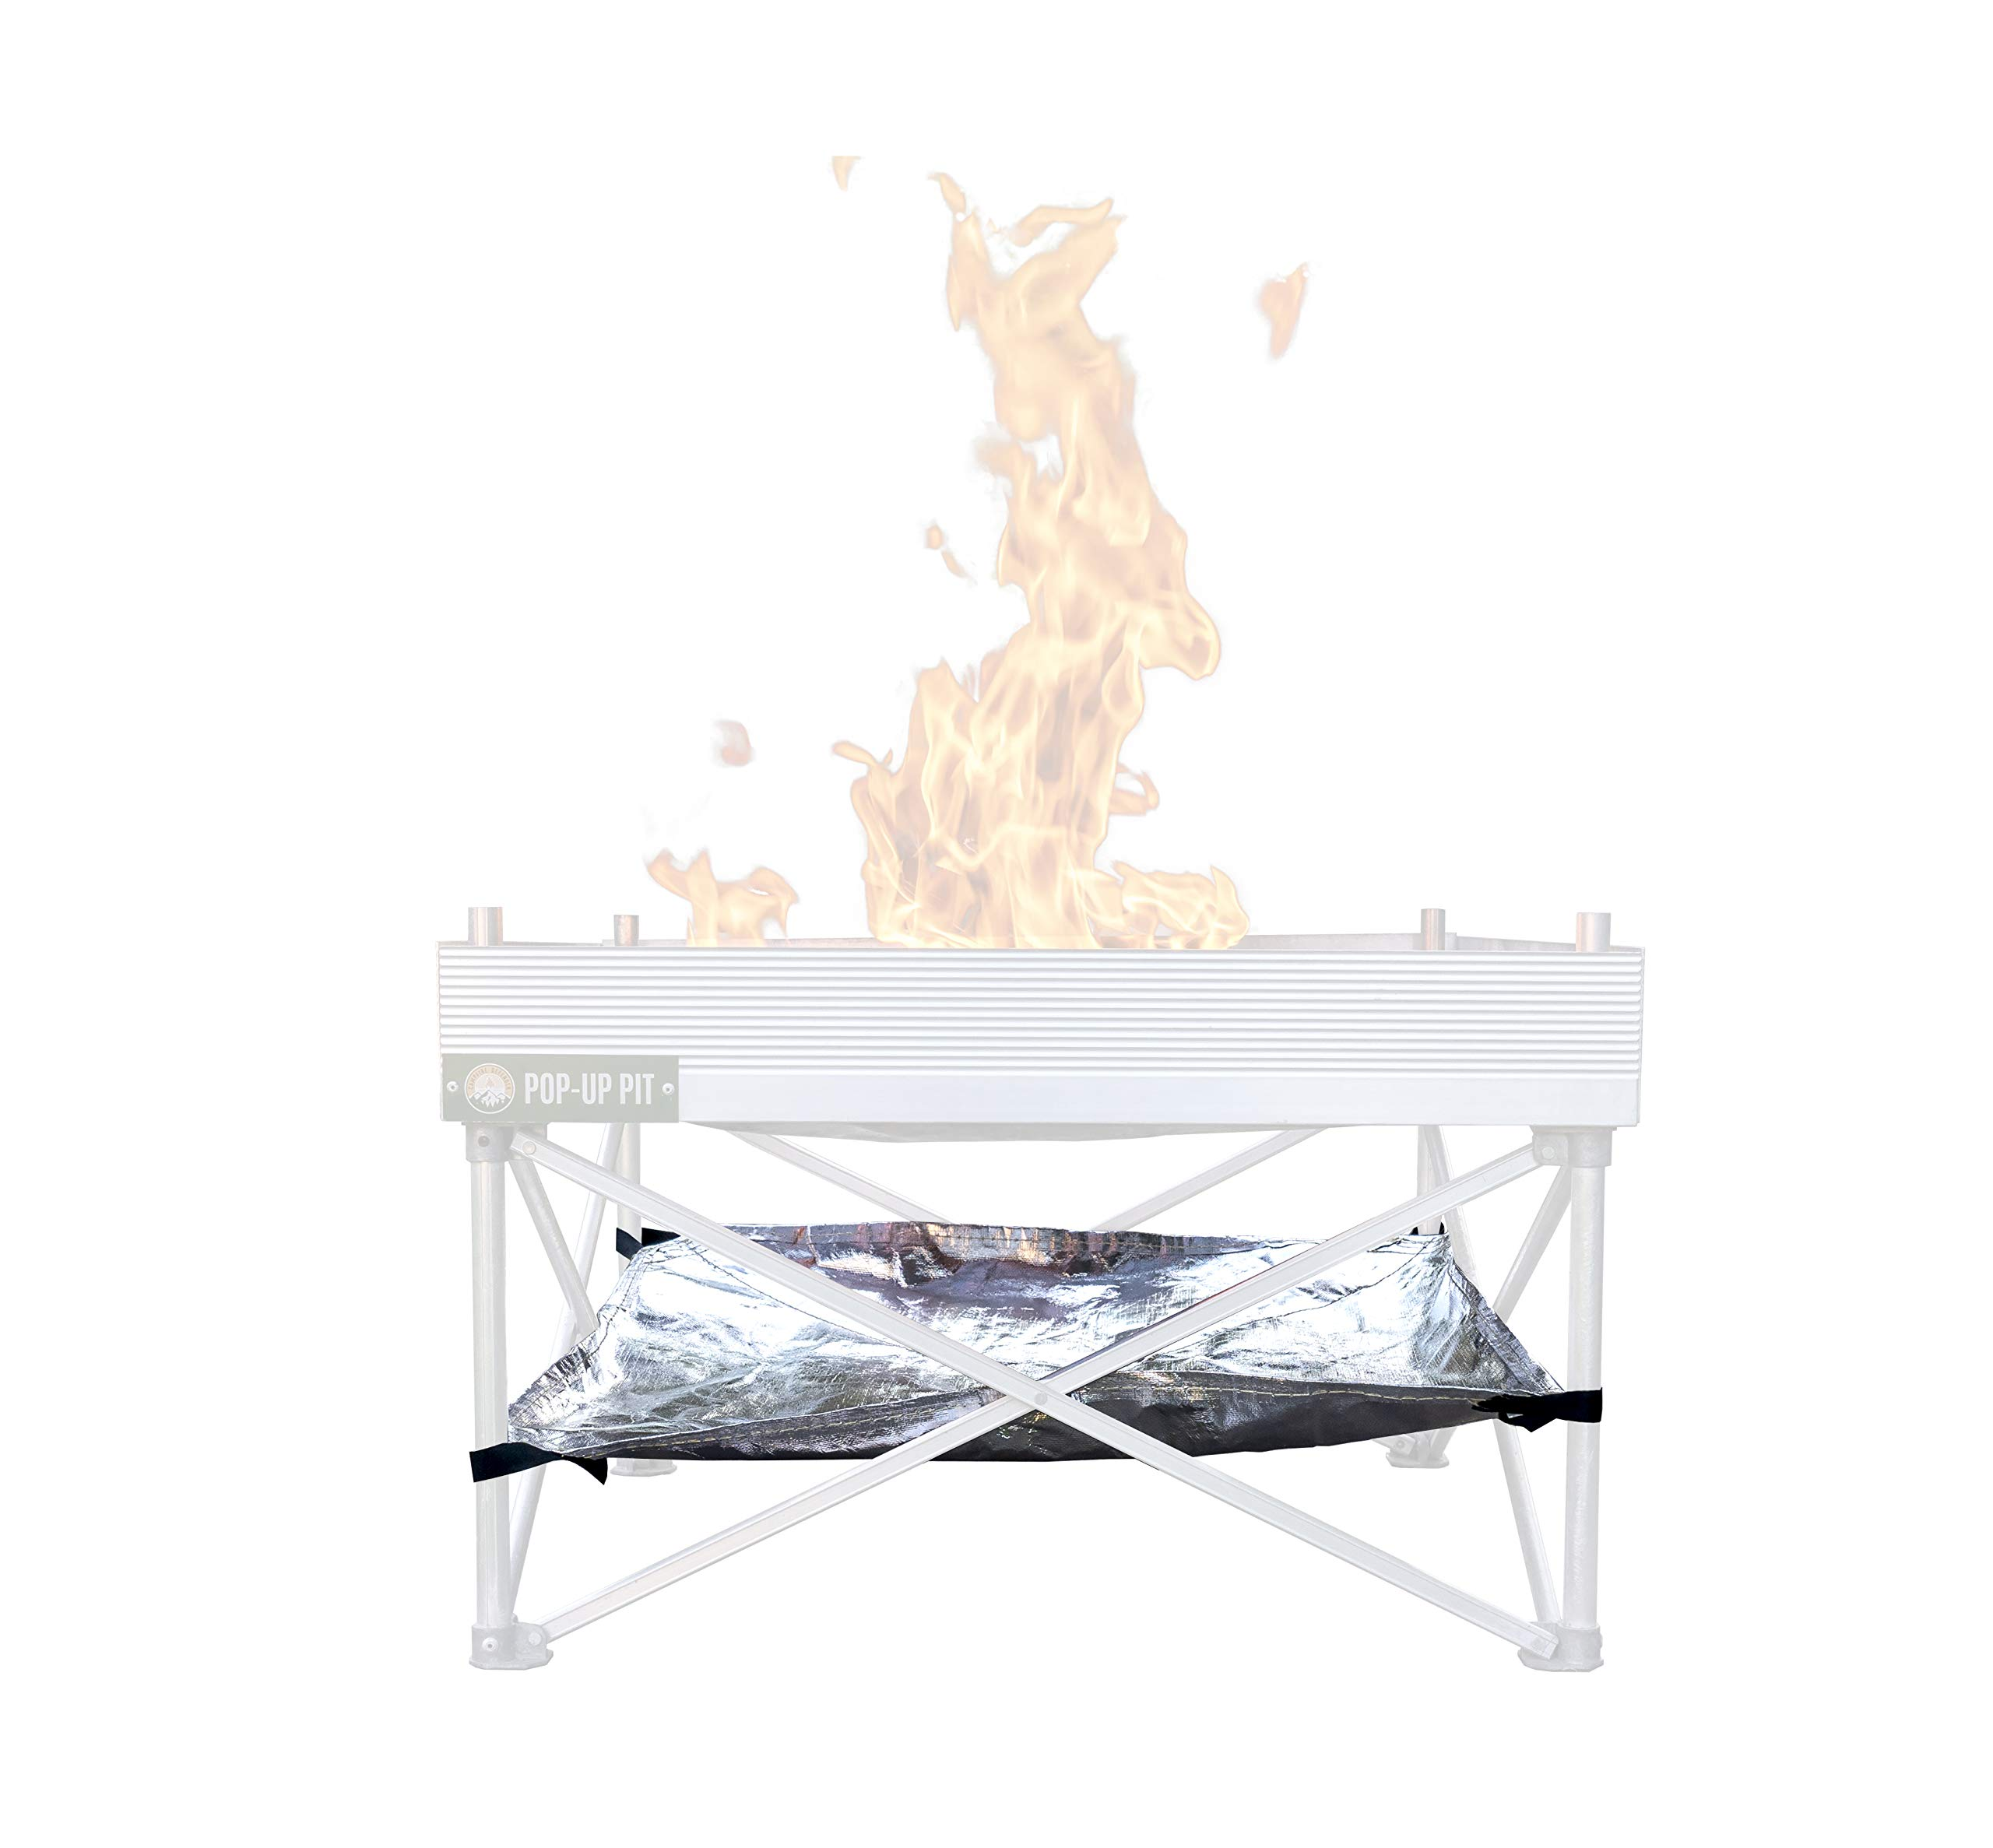 Campfire Defender Protect Preserve PopUp Pit Heat Shield Replacement Part (24'' Version) by Campfire Defender Protect Preserve